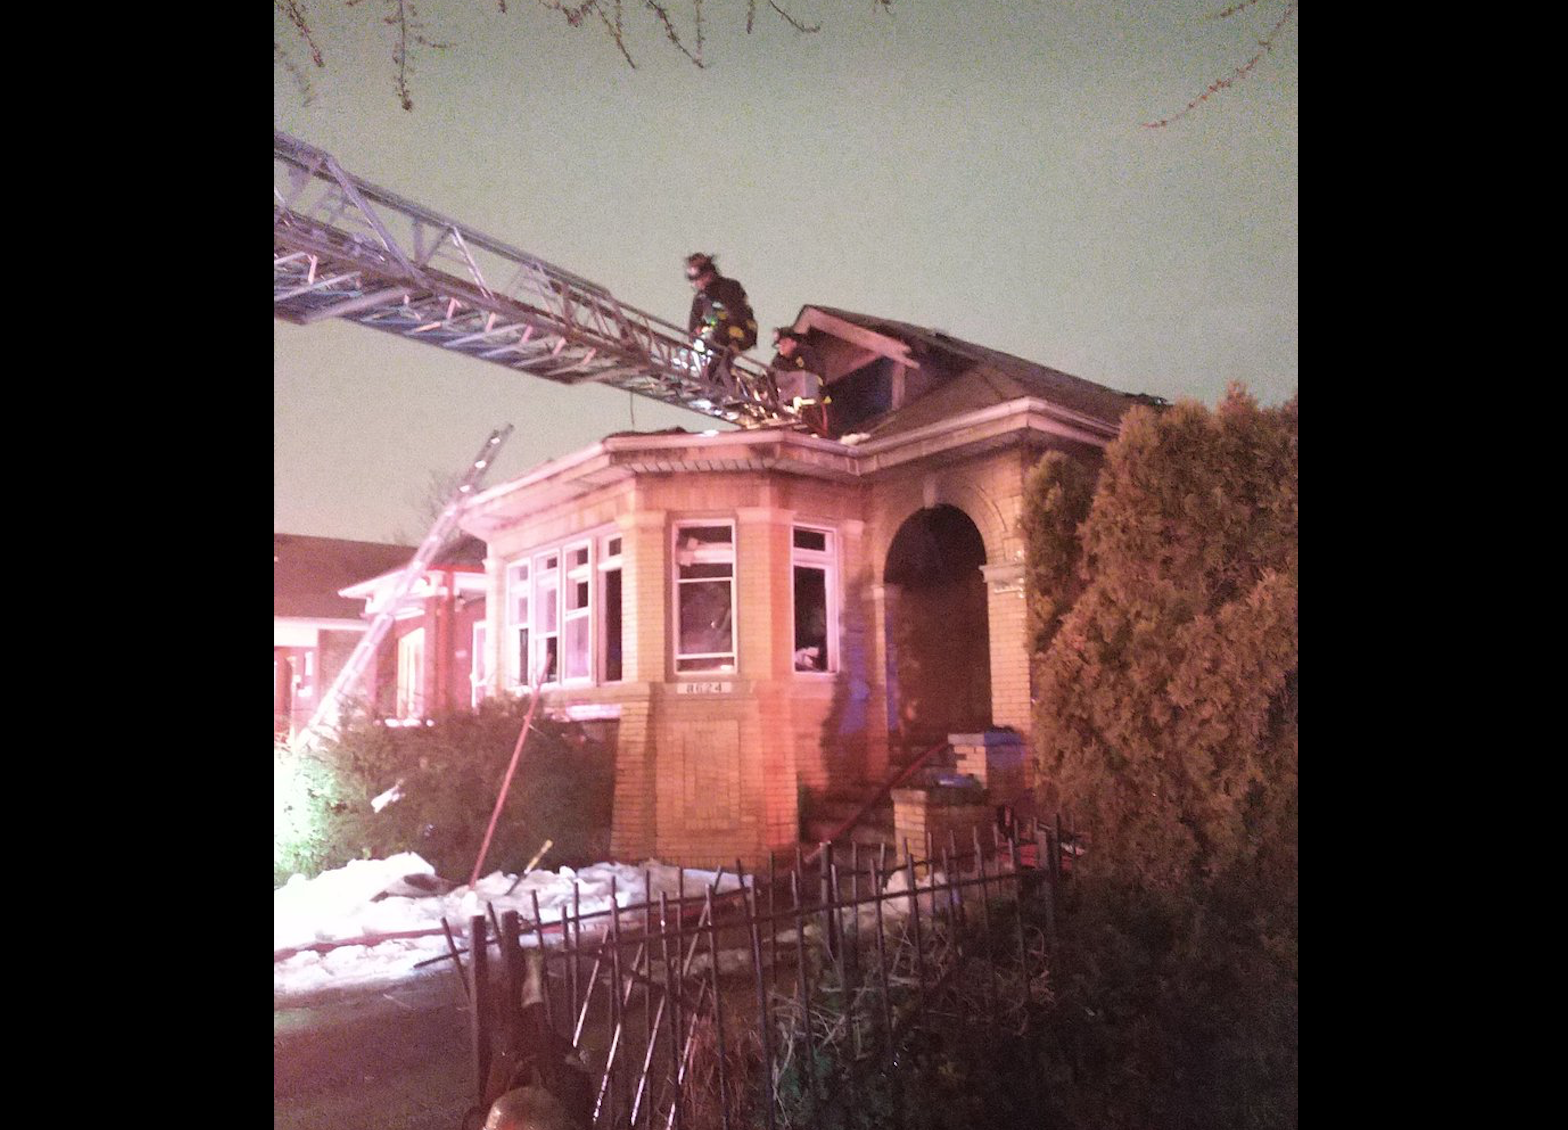 A fire broke out in a home Feb. 28, 2021 in the 8600 block of South Hermitage Avenue in Gresham.